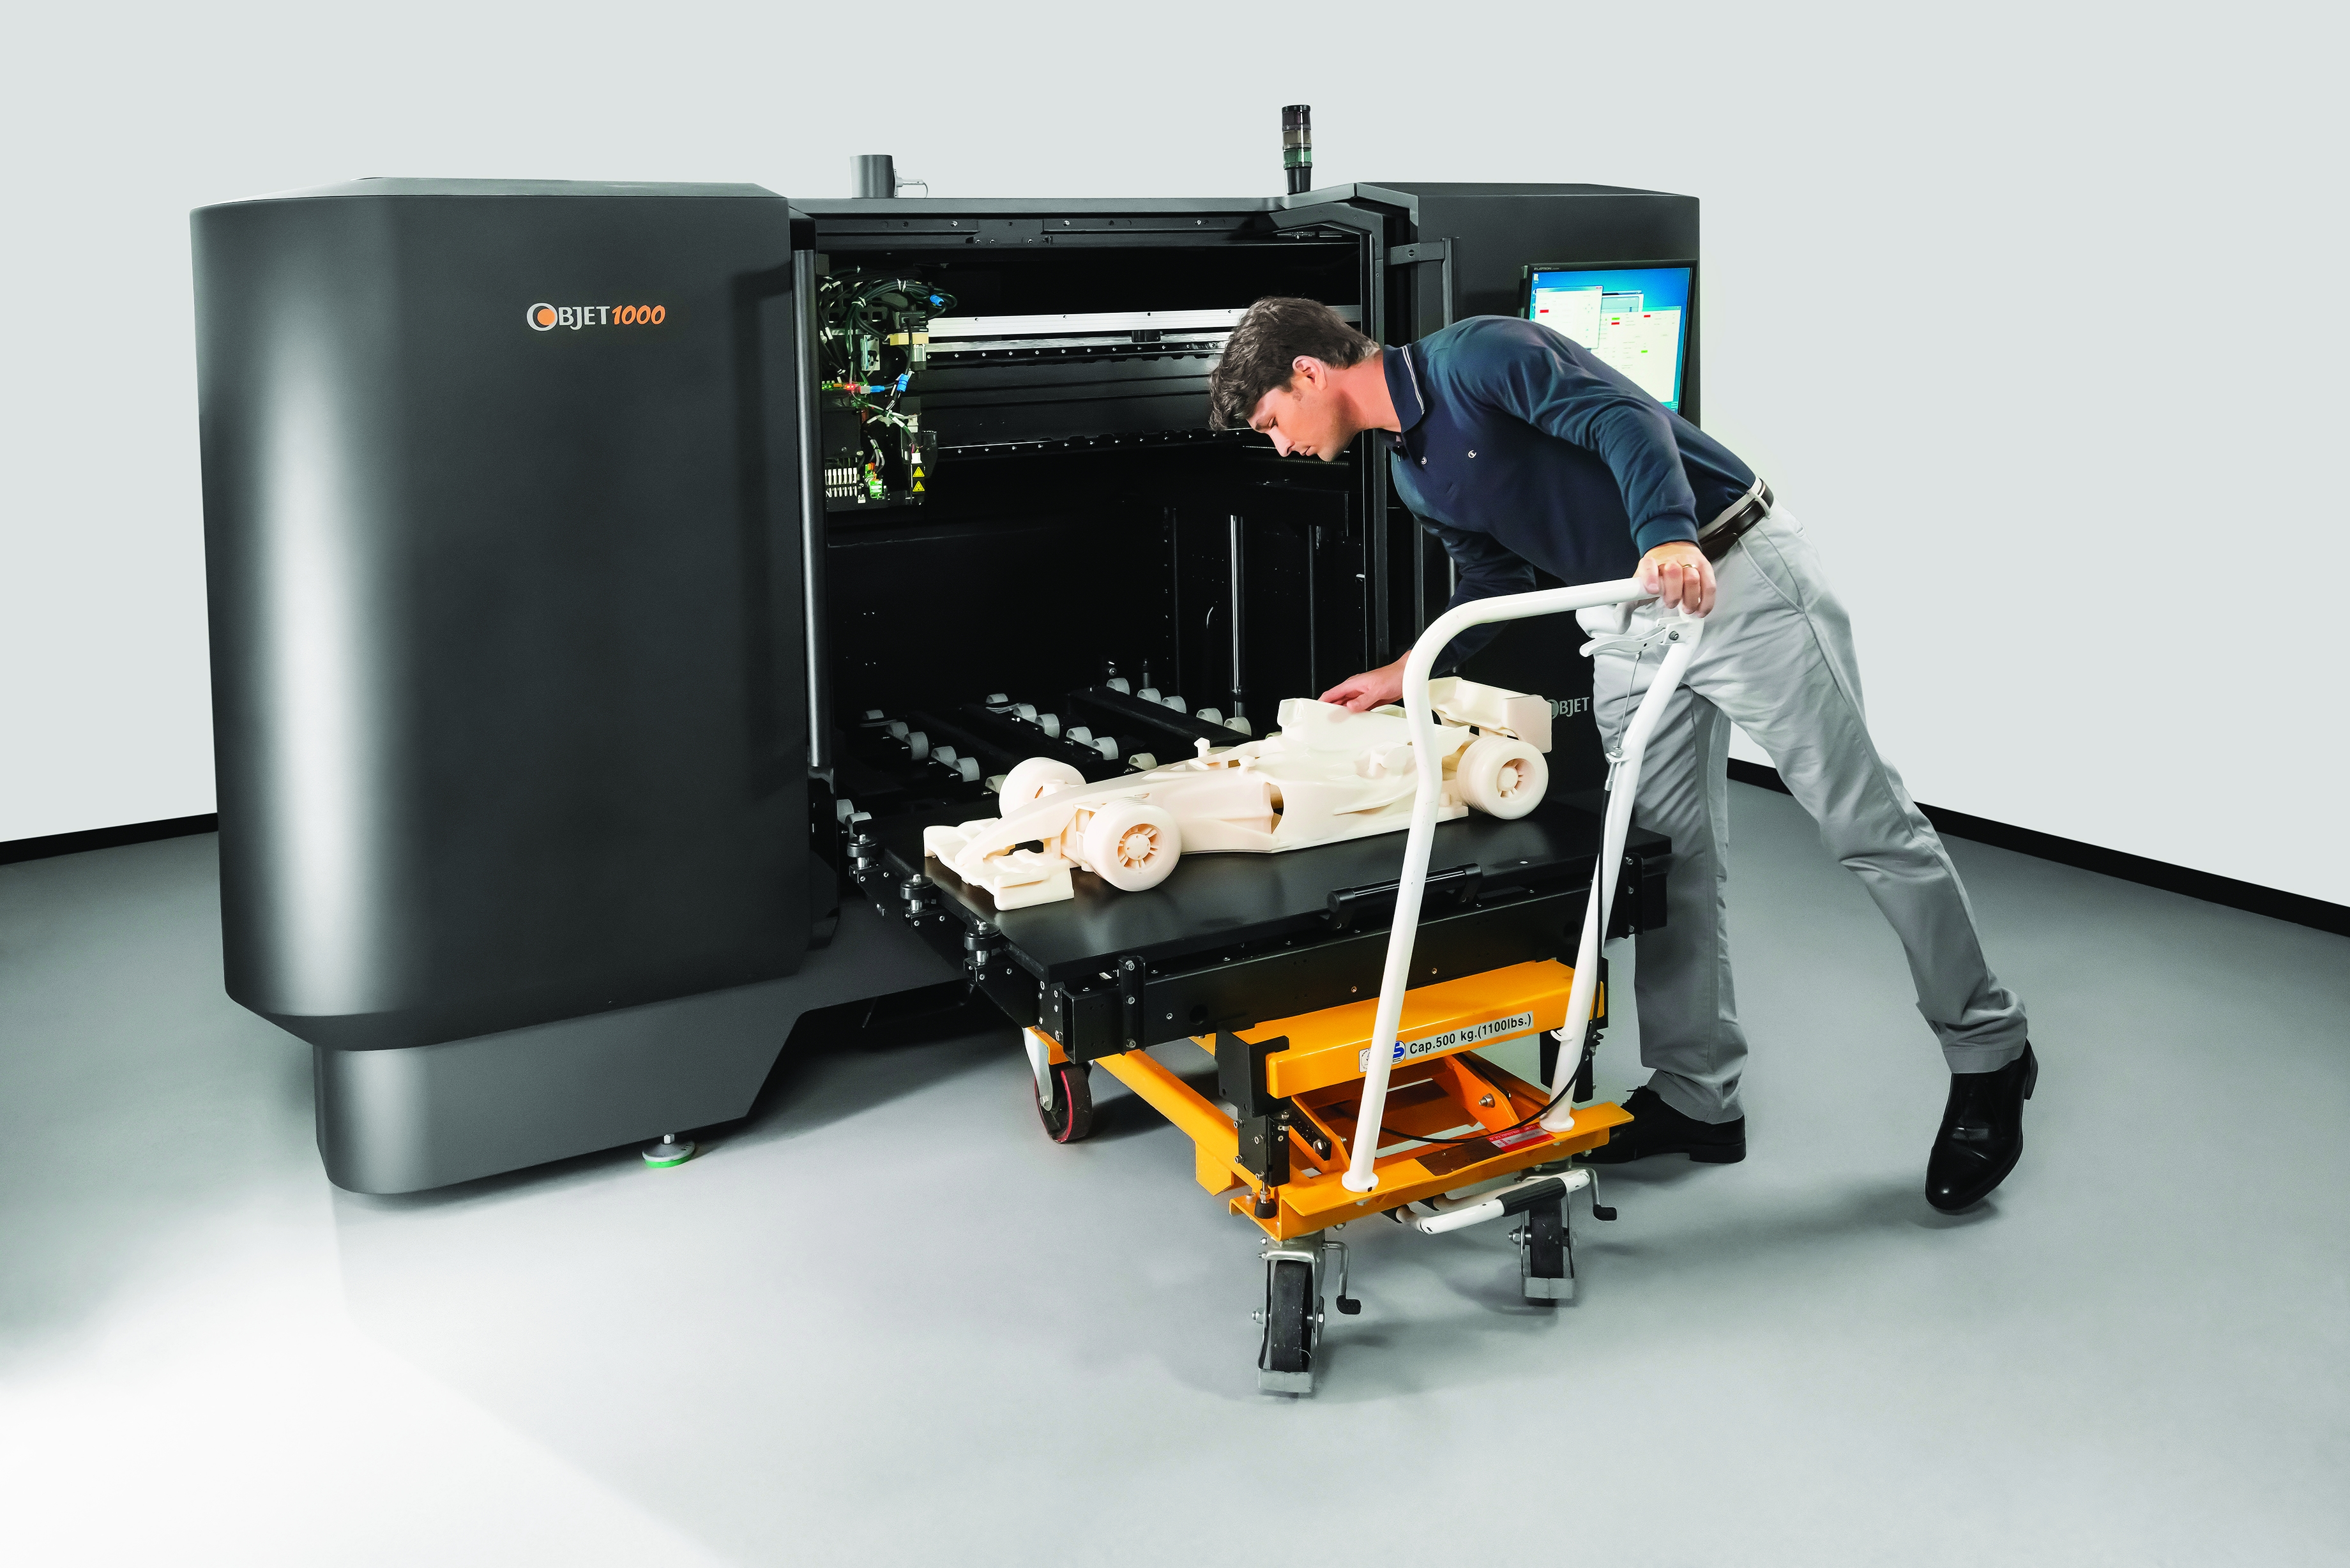 Objet's connex 3D printers are the only commercially available systems able to print multi-materials